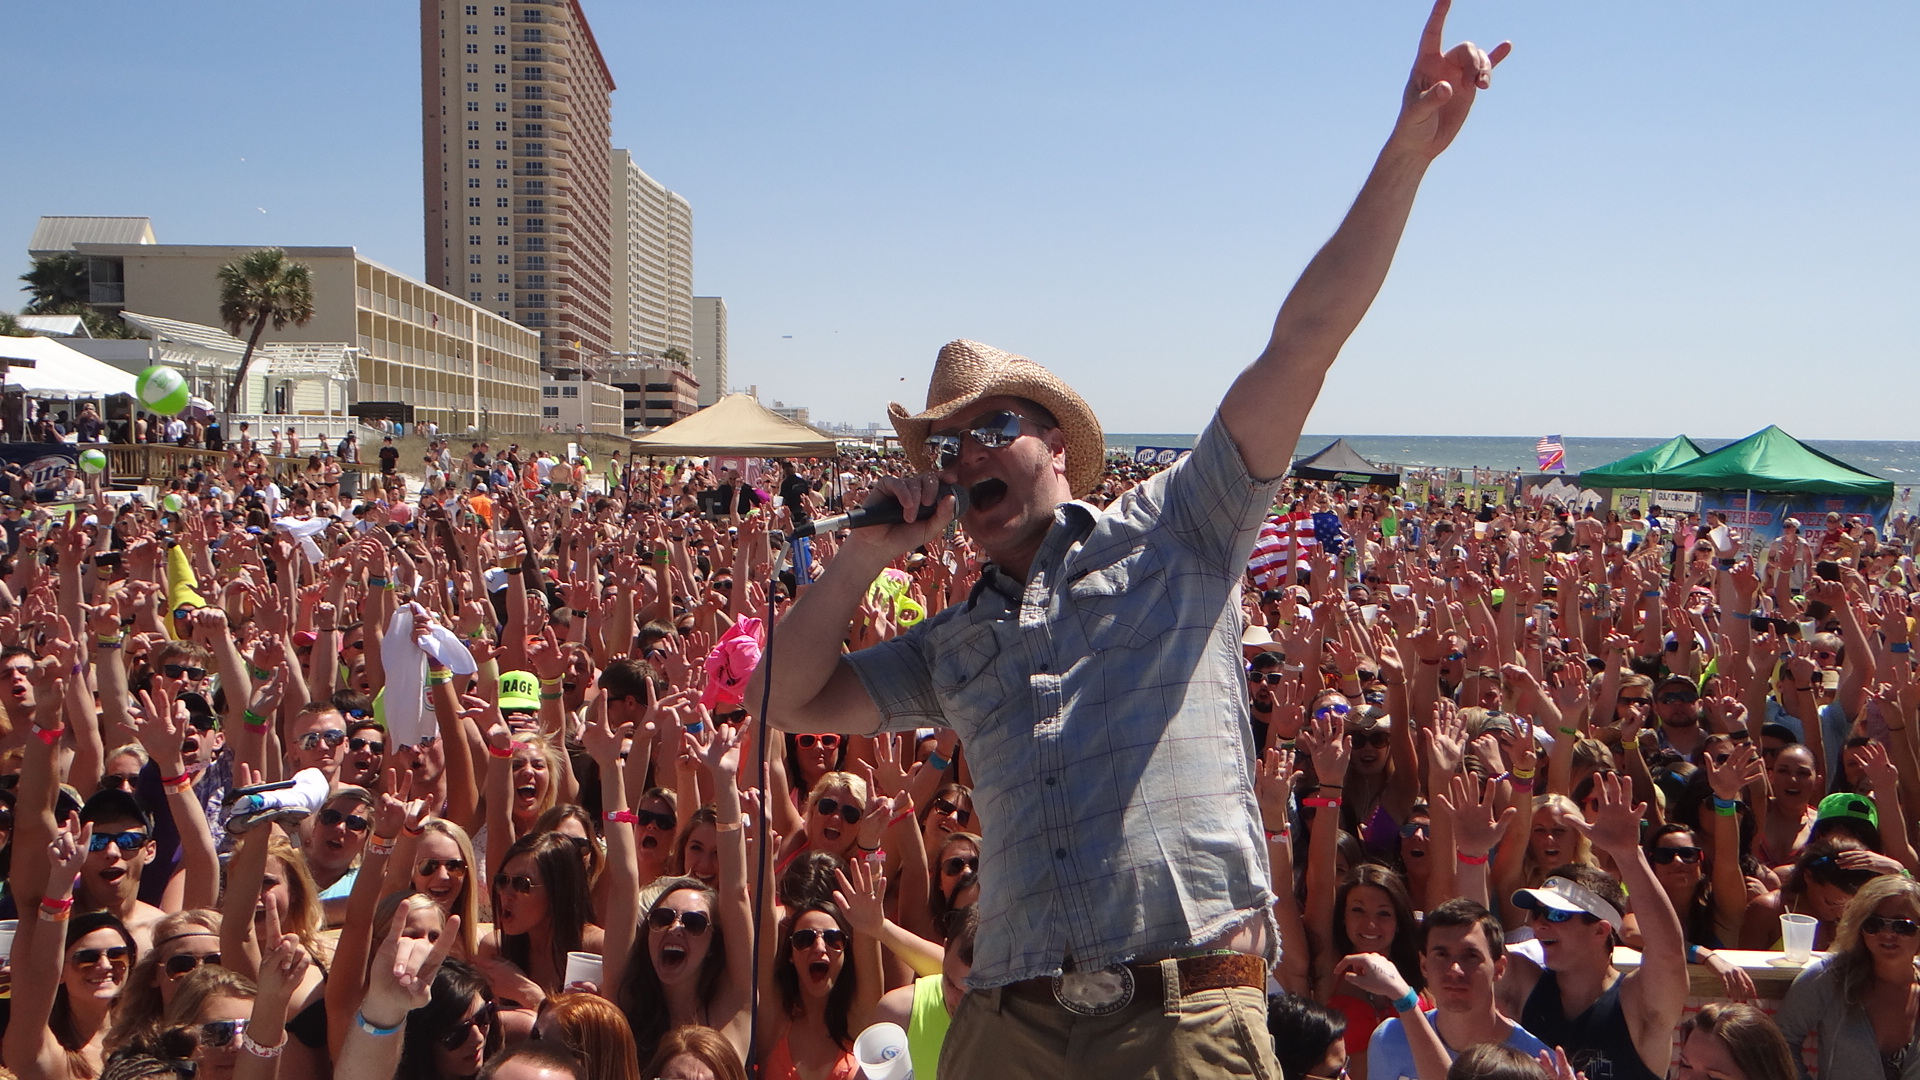 More Live Concerts Are Promised For Spring Break 2017